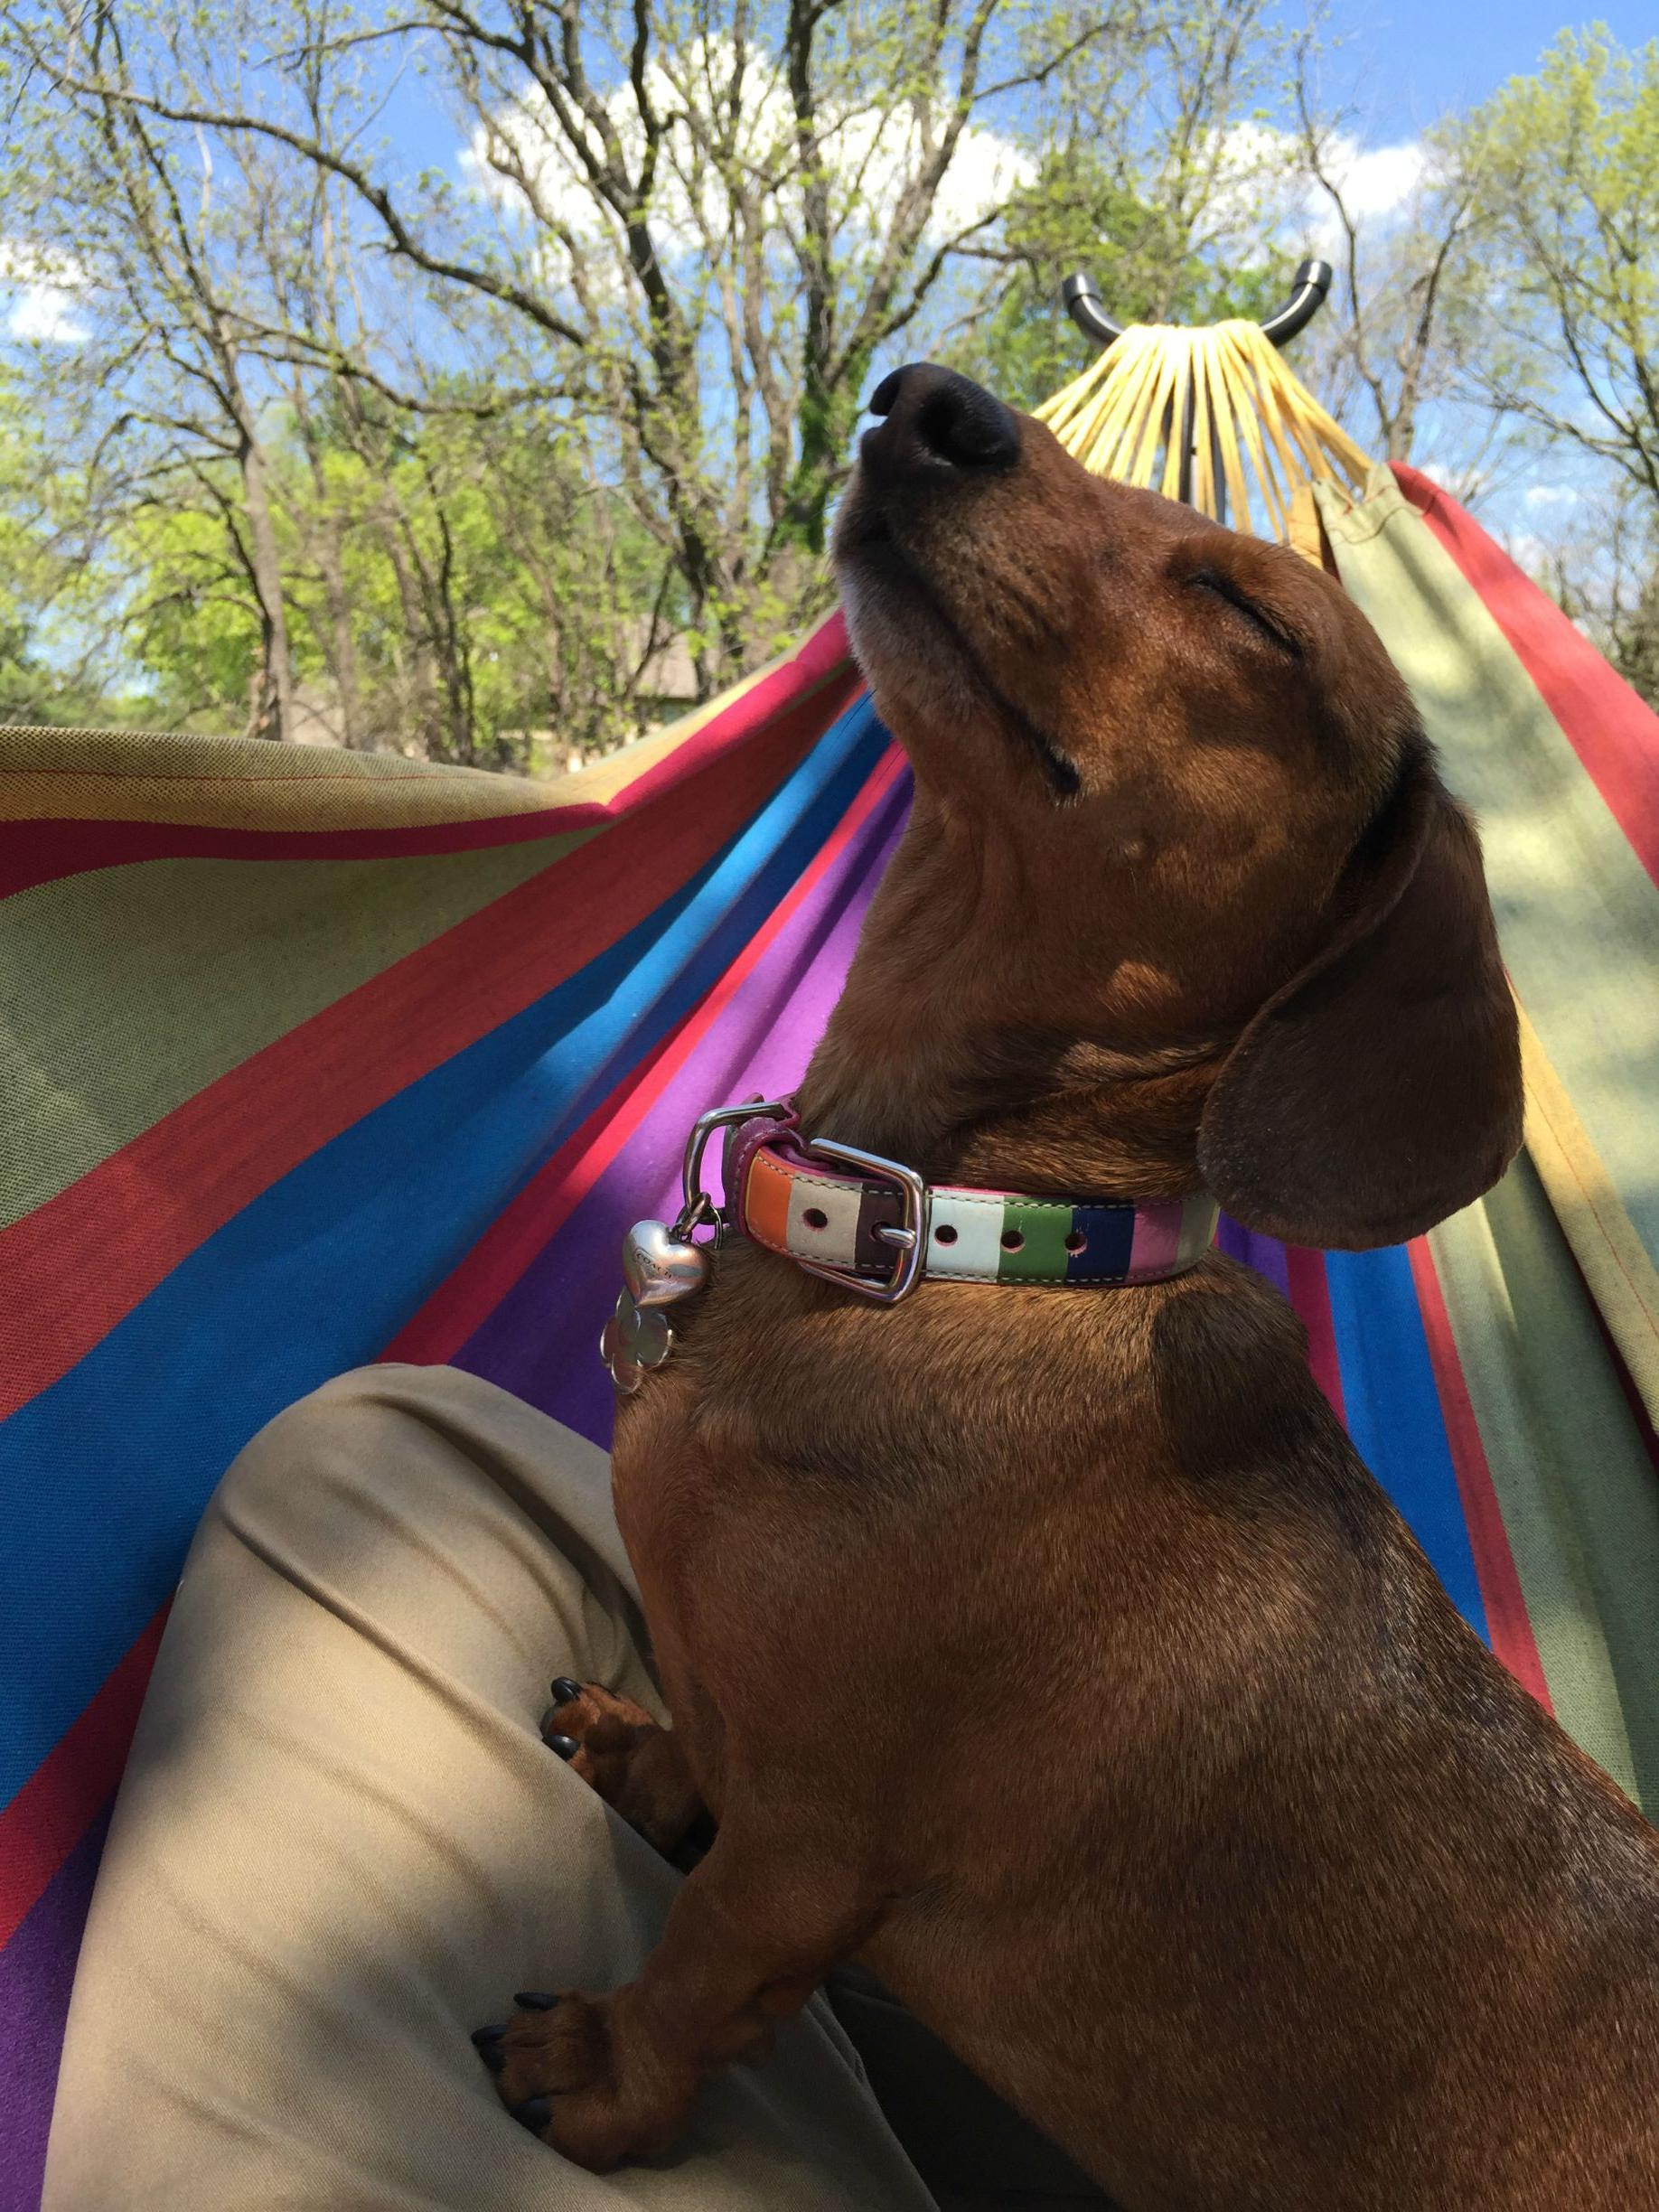 My dog is enjoying this hammock on a much deeper level than me.